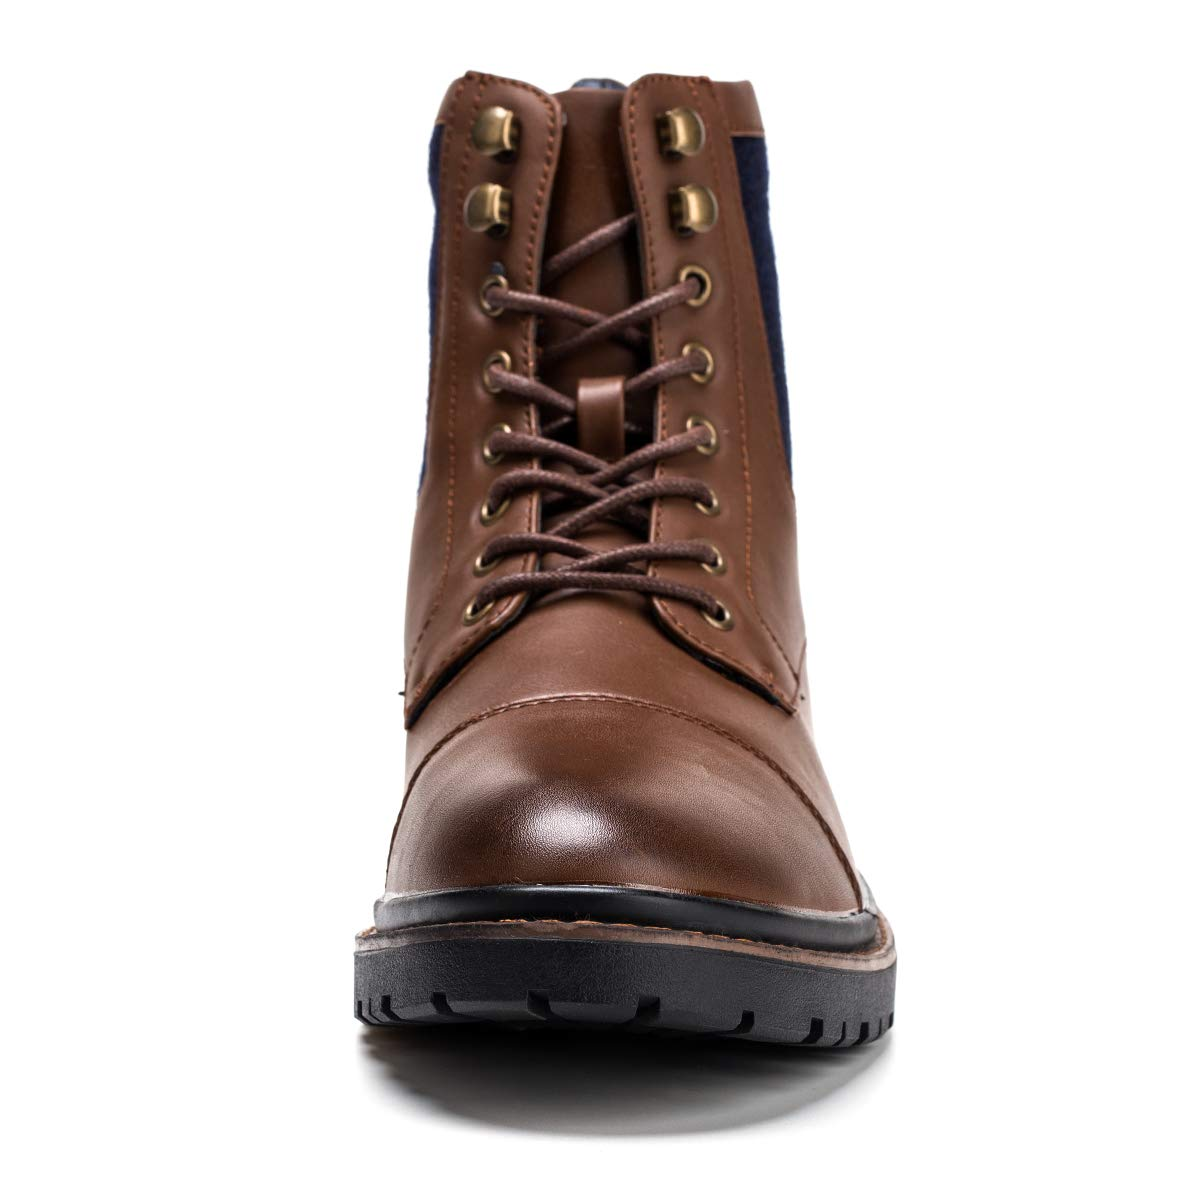 Motorbike Boots Waterproof Genuine Leather Motorcycle Riding Boots Vantage Design Casual Shoes with ESA Protection for Men Coffee